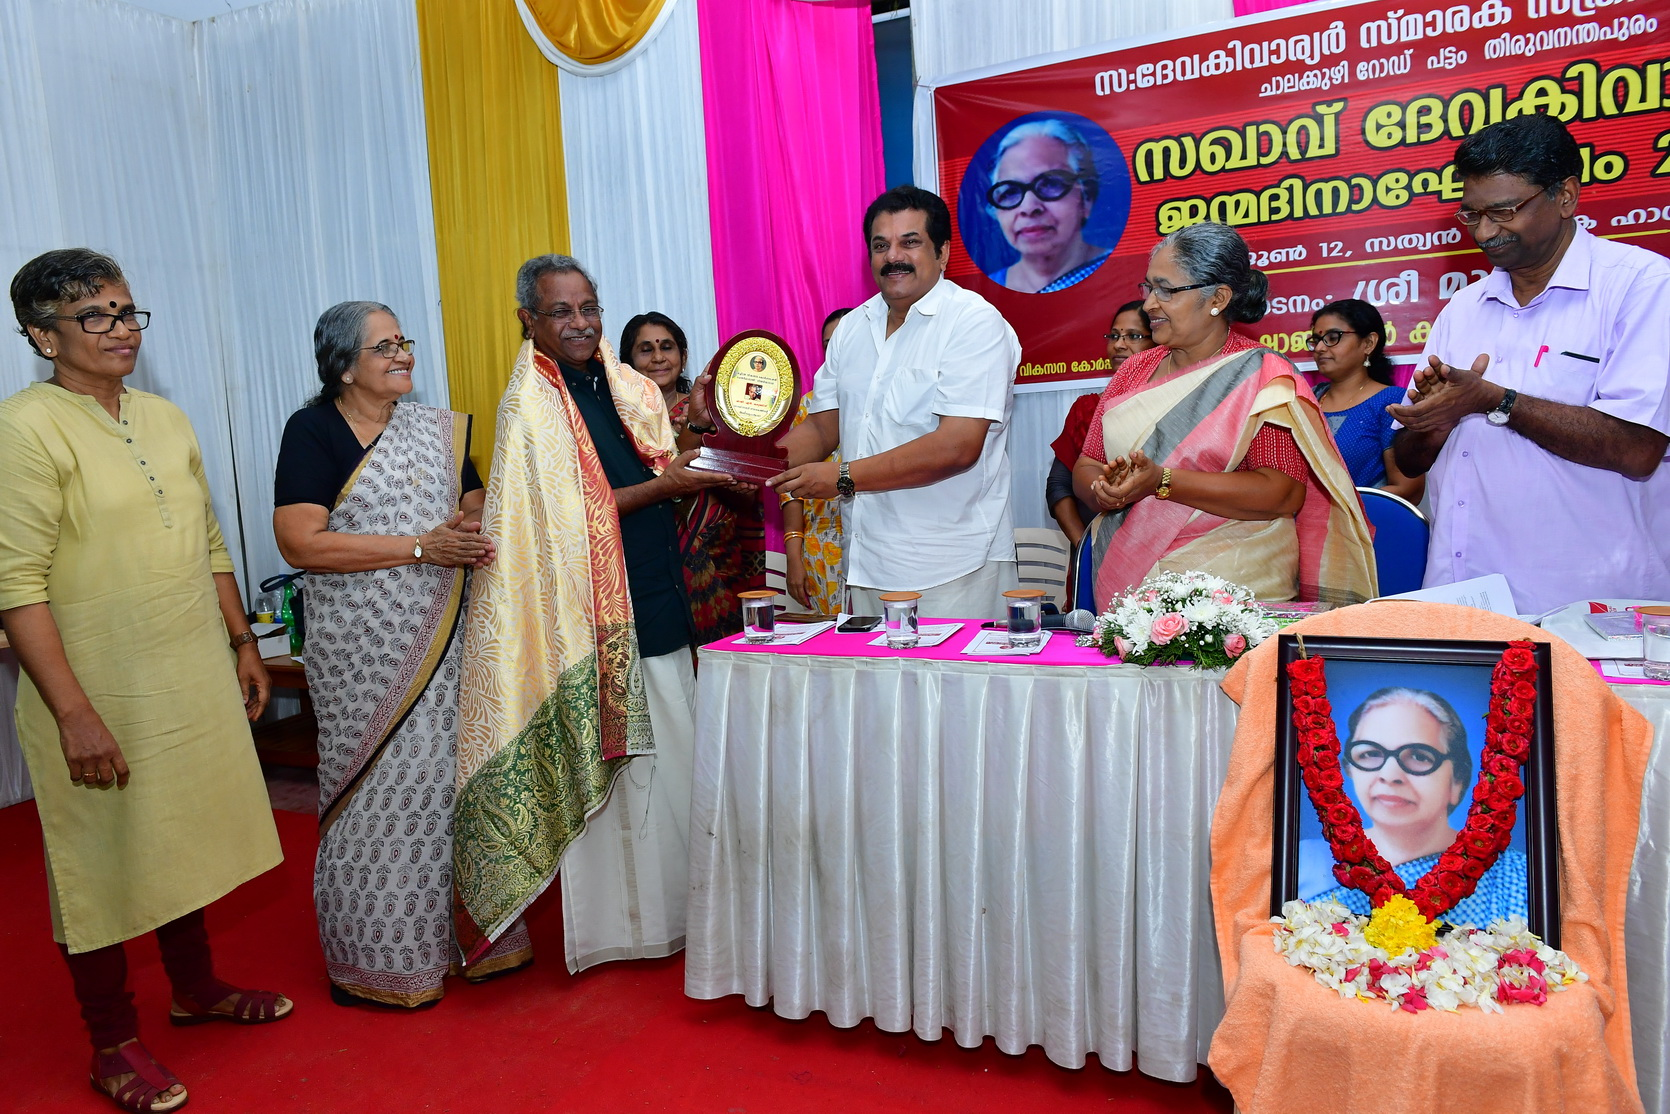 MLA Mukesh inaugurated 96th birth anniversary of Devaki warrier 2019 with a very enlightening and informative speech .